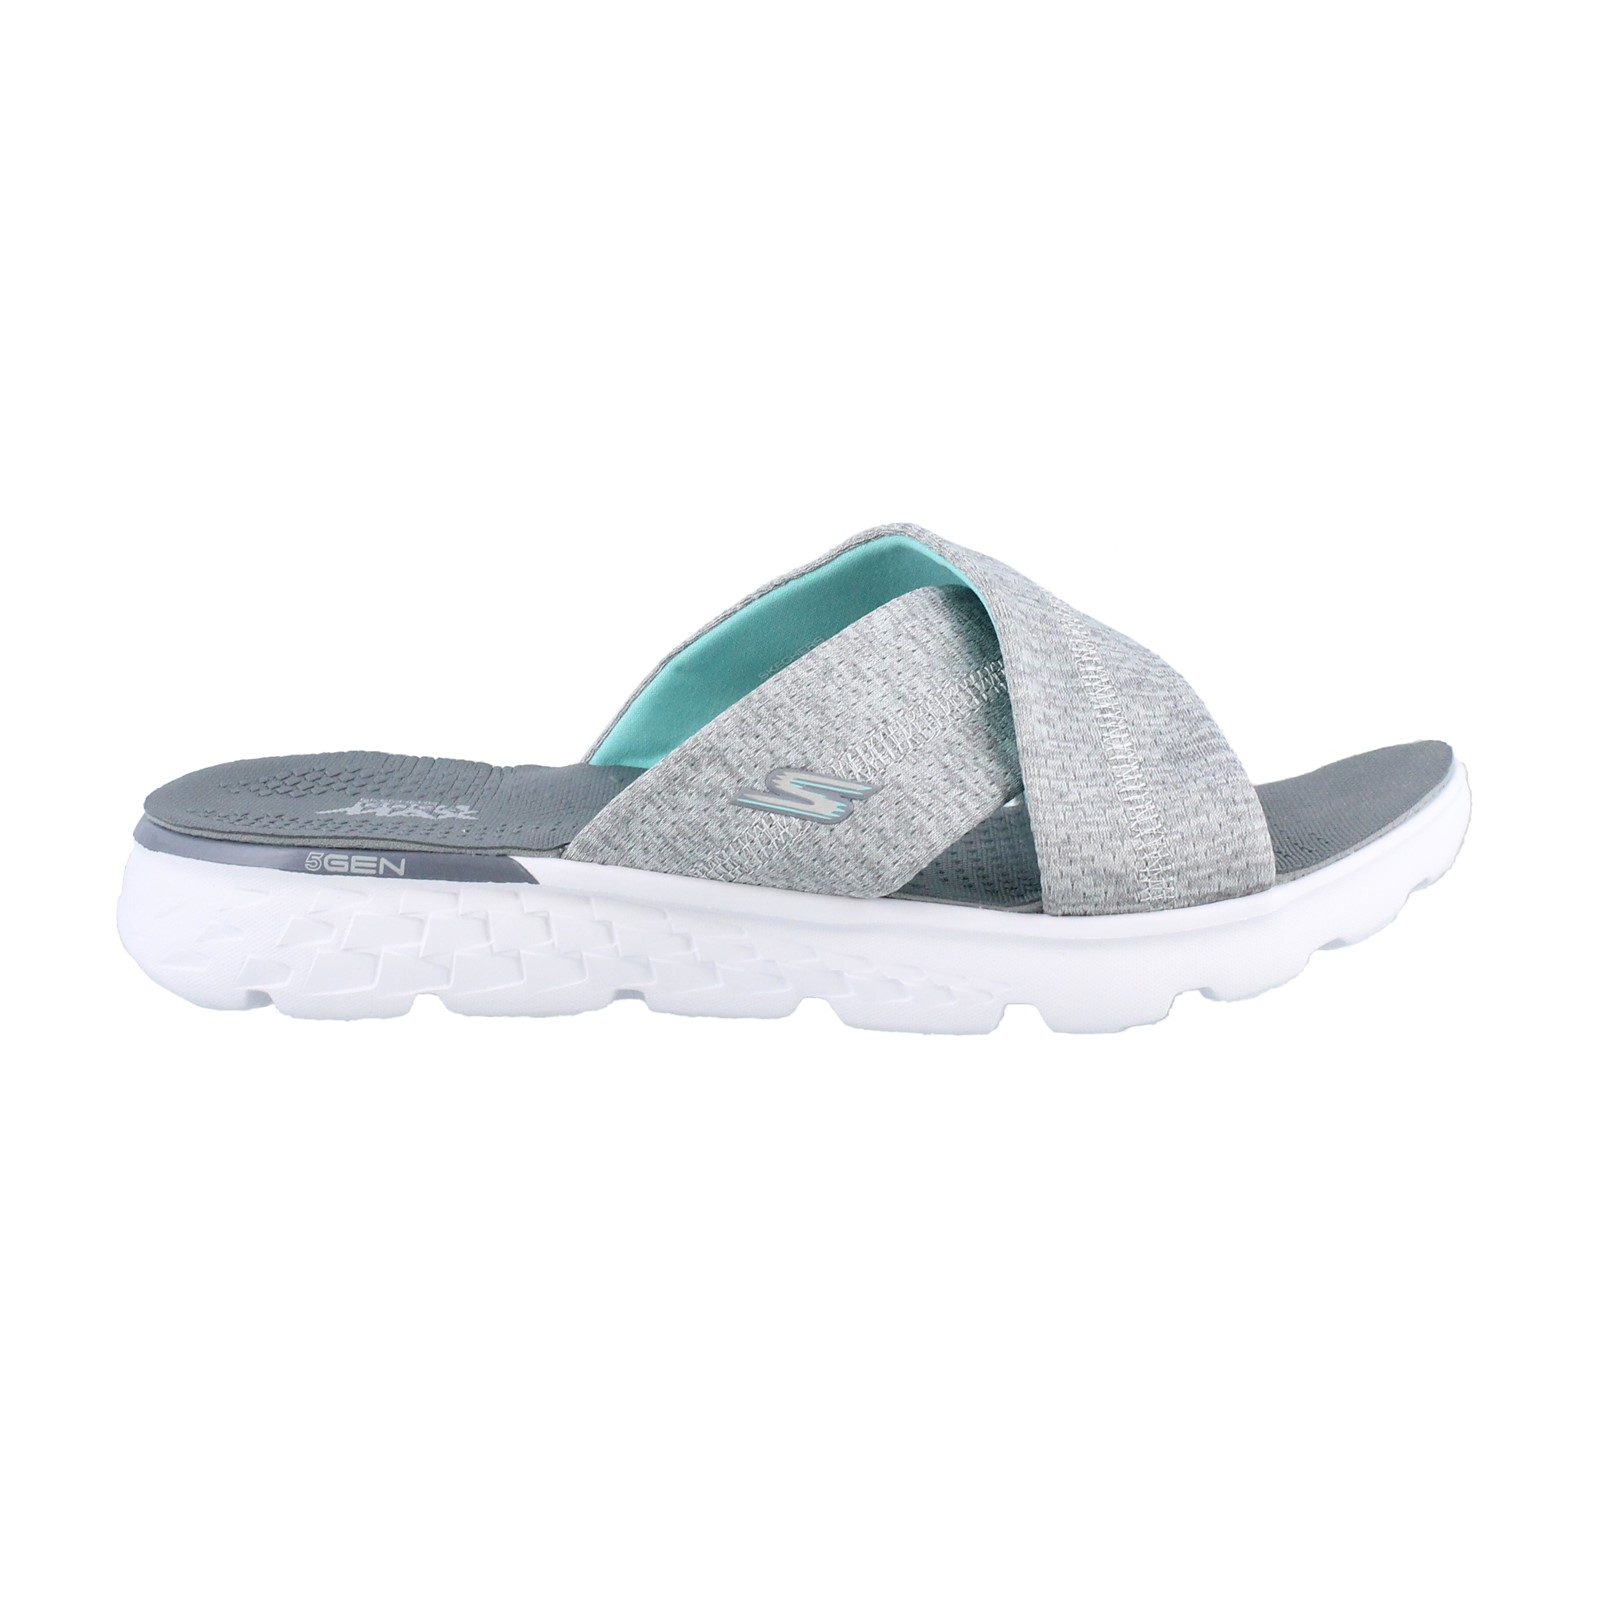 Women's Skechers, On The Go 400 Blissful Slide Sandals